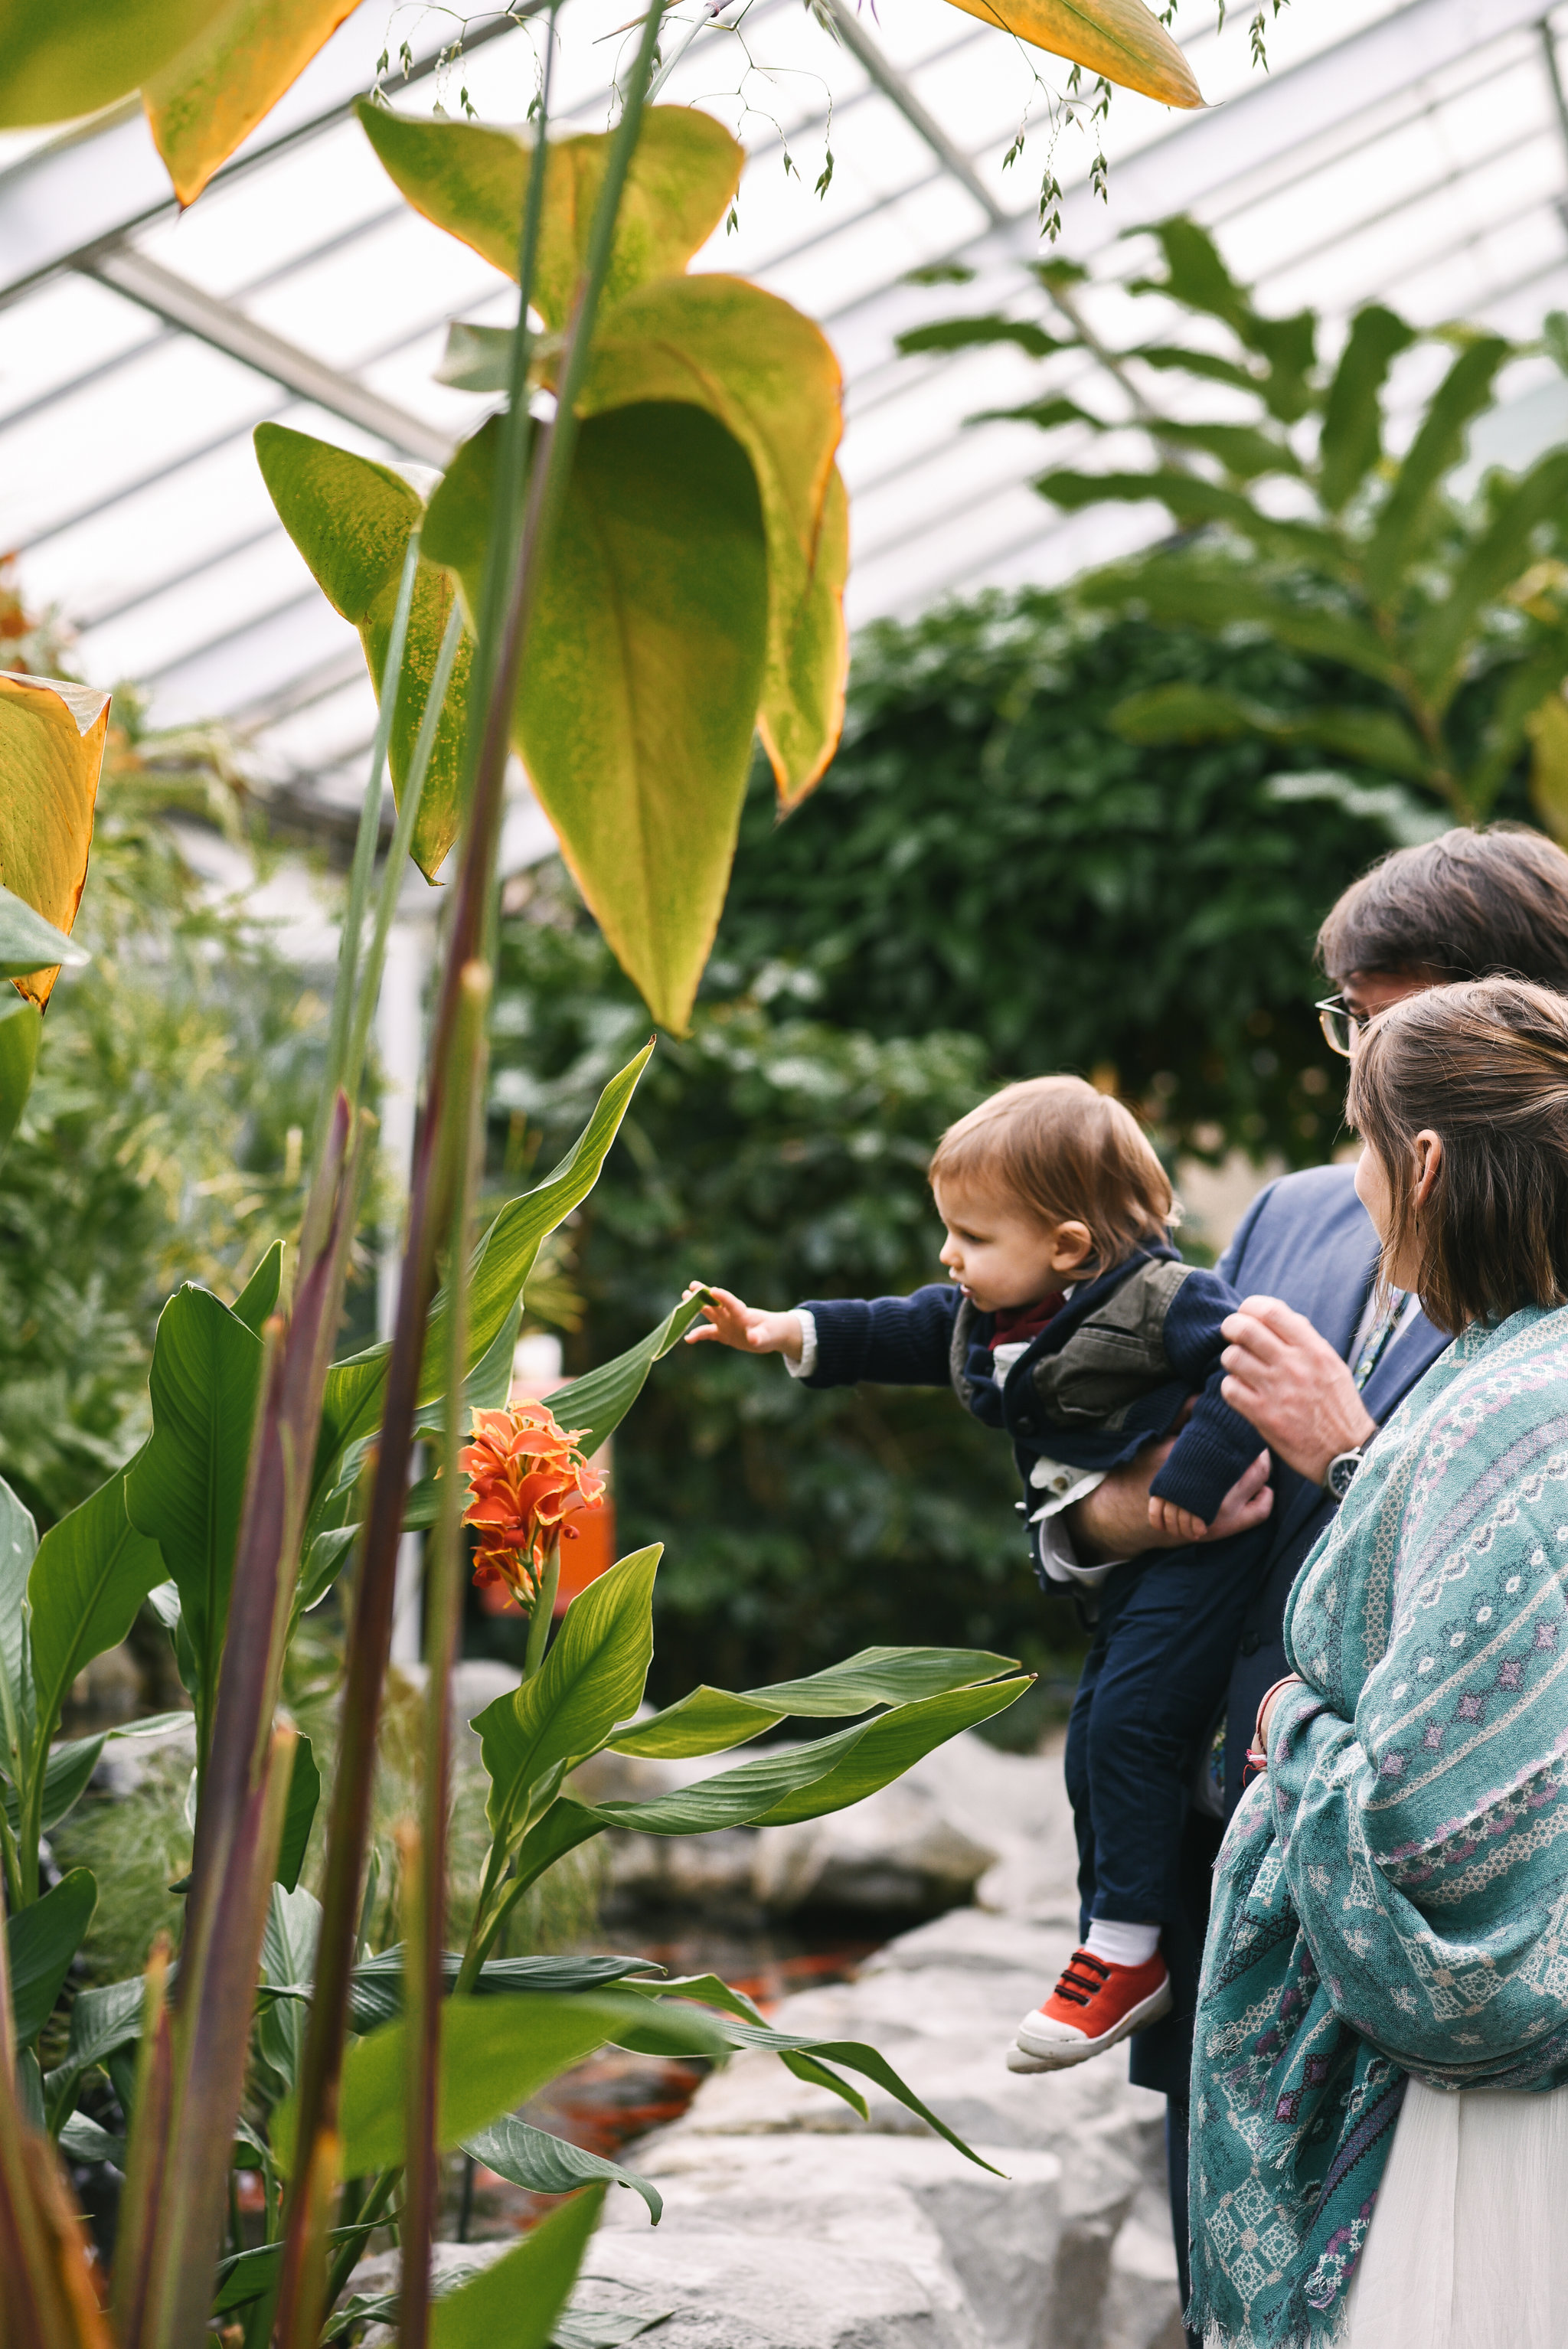 Rawlings Conservatory, Druid Hill Park, Intimate Wedding, Nature, Baltimore Wedding Photographer, Romantic, Classic, Bride and Groom with Son, Orange Flowers